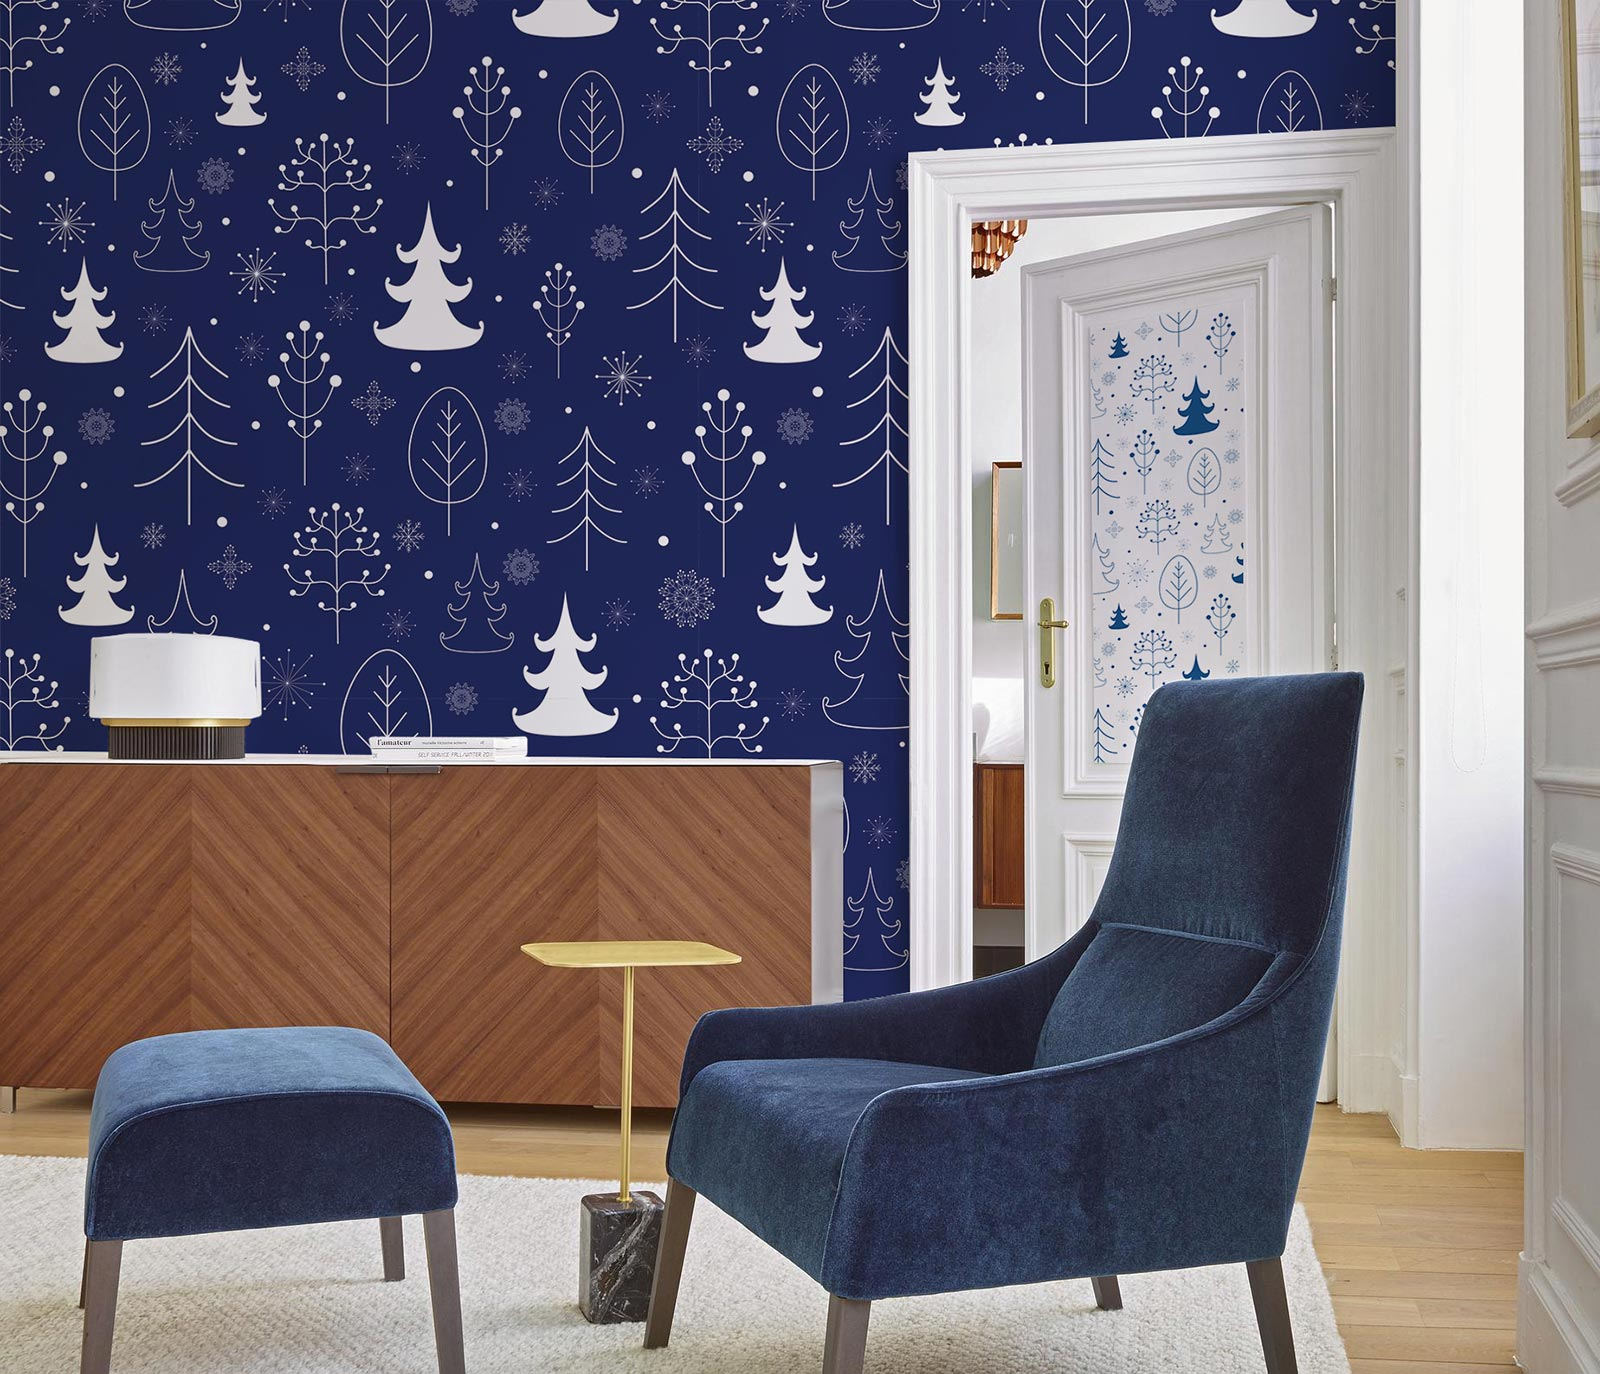 White and blue Christmas wall mural